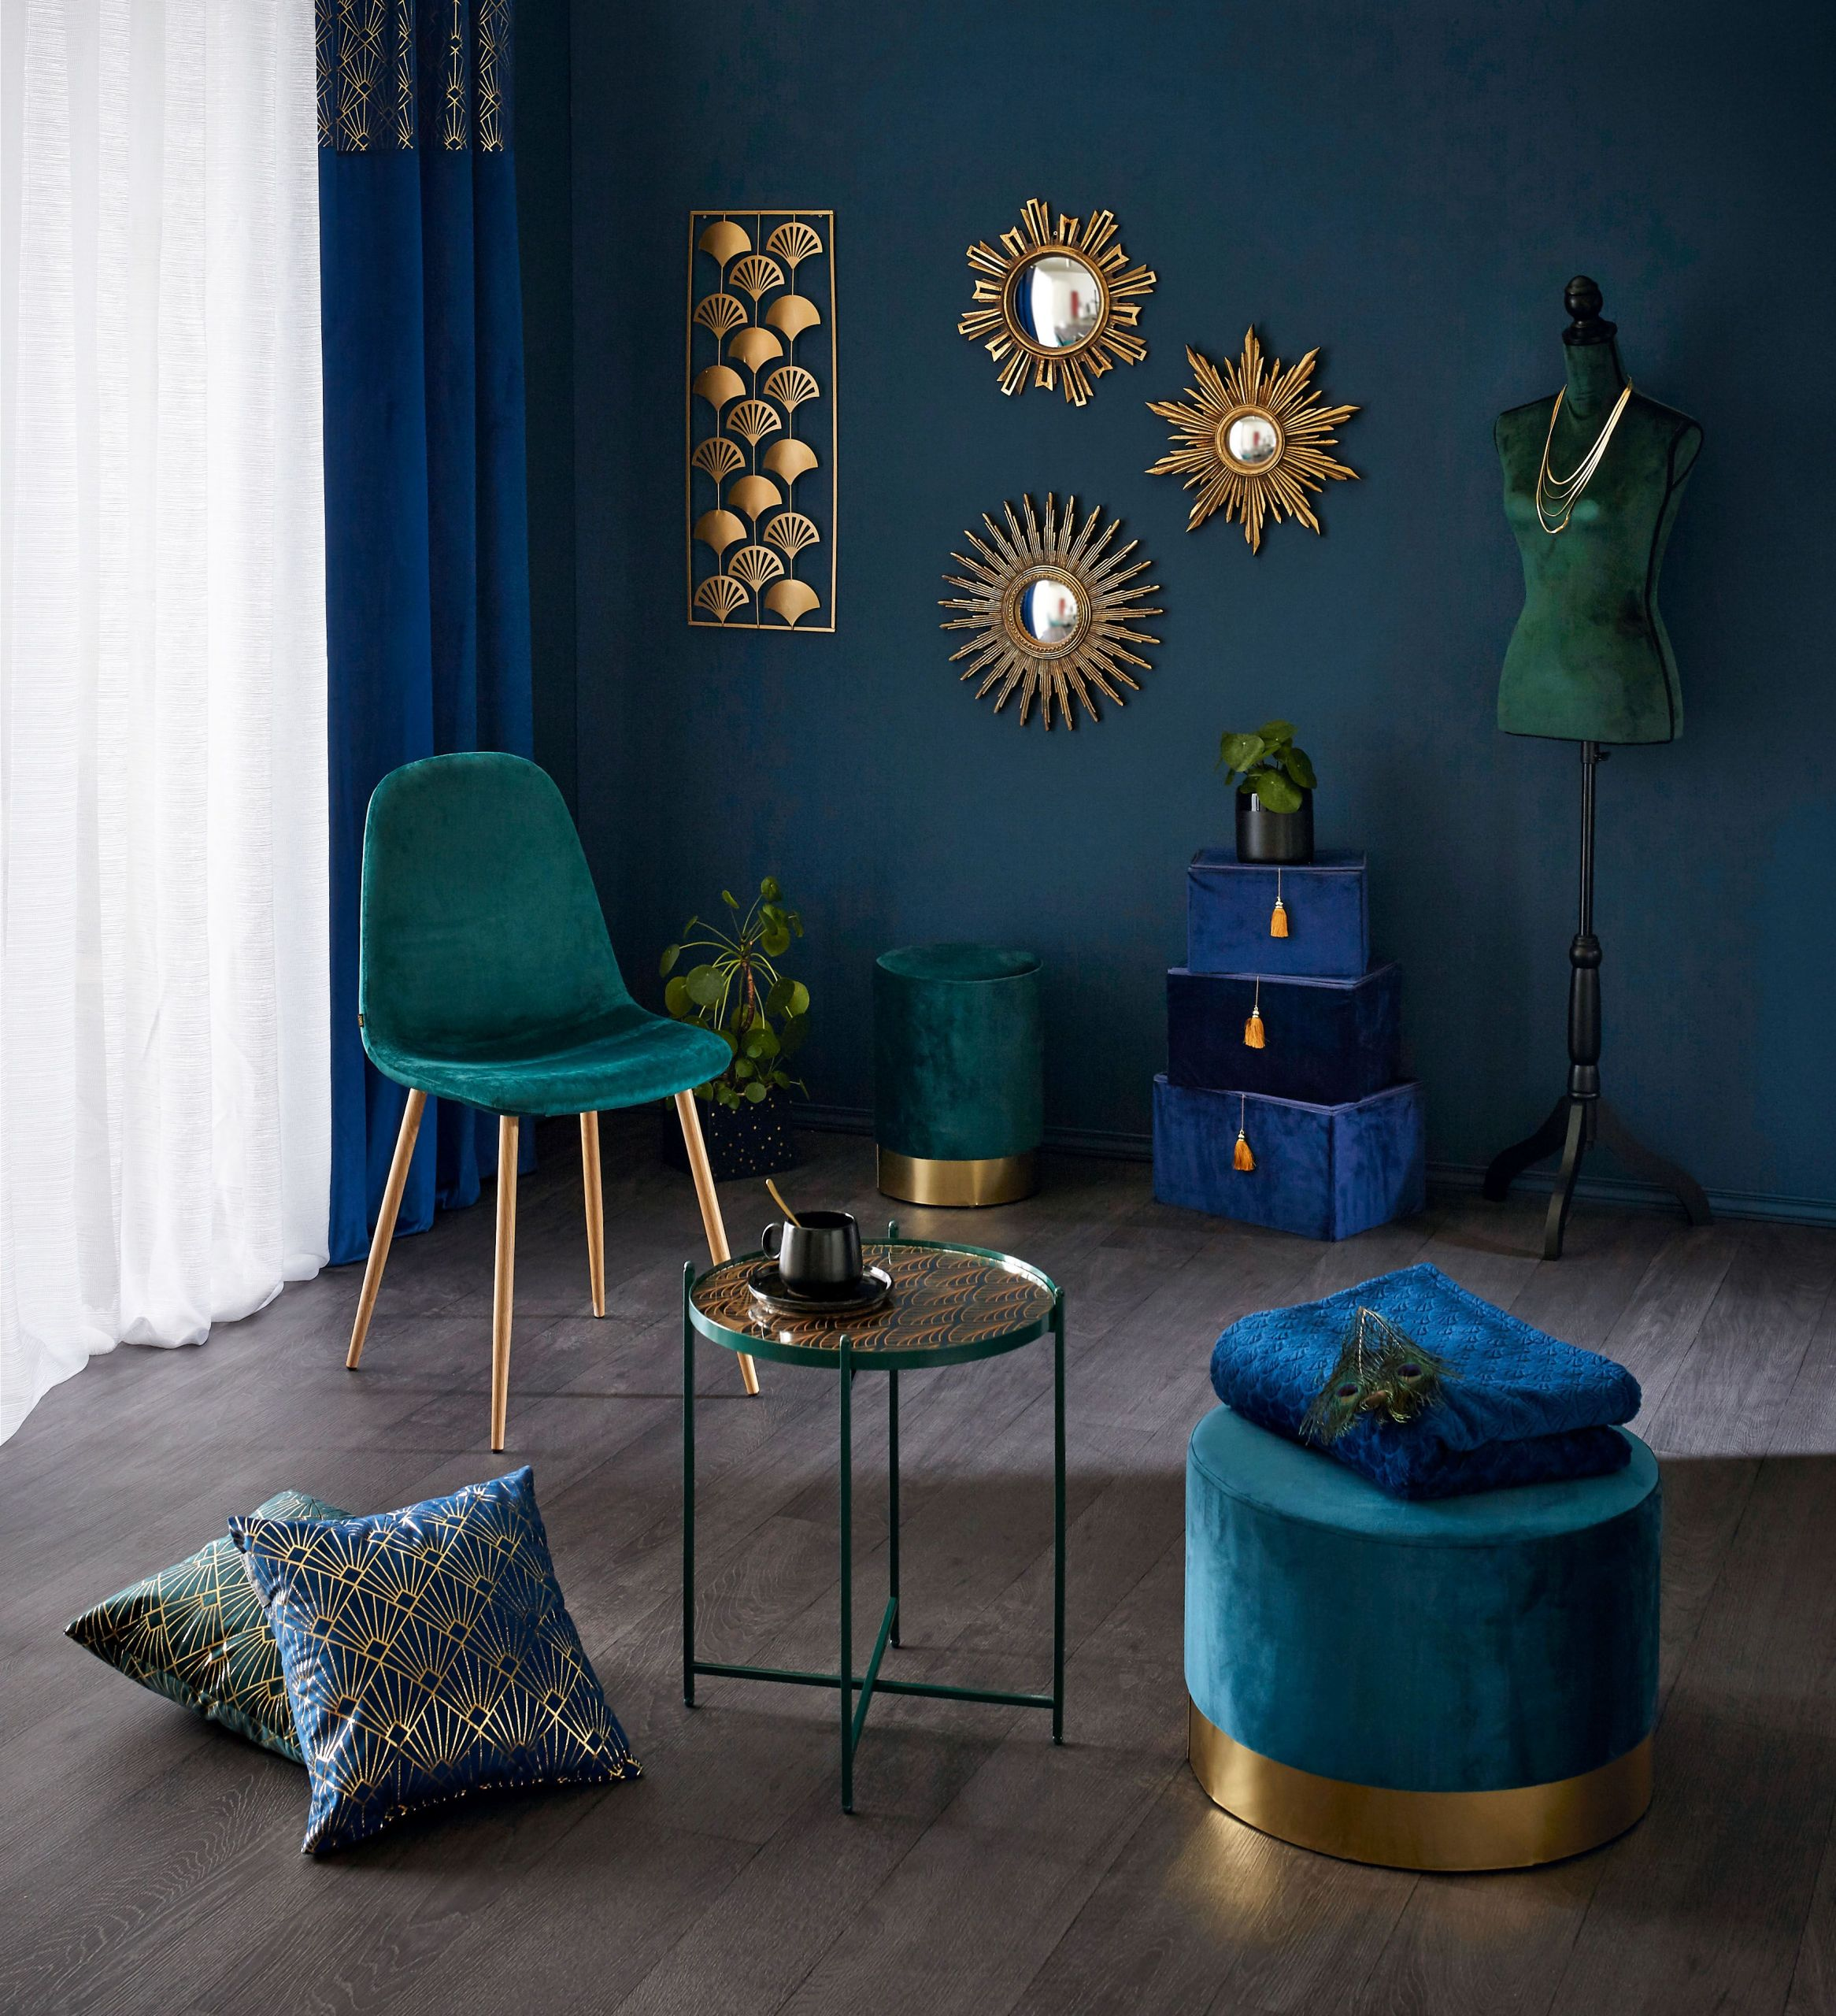 Salon De Jardin Arrondi Best Of Pin by Charl¨ne Kymaira On Home Decor In 2019 Of 37 Nouveau Salon De Jardin Arrondi